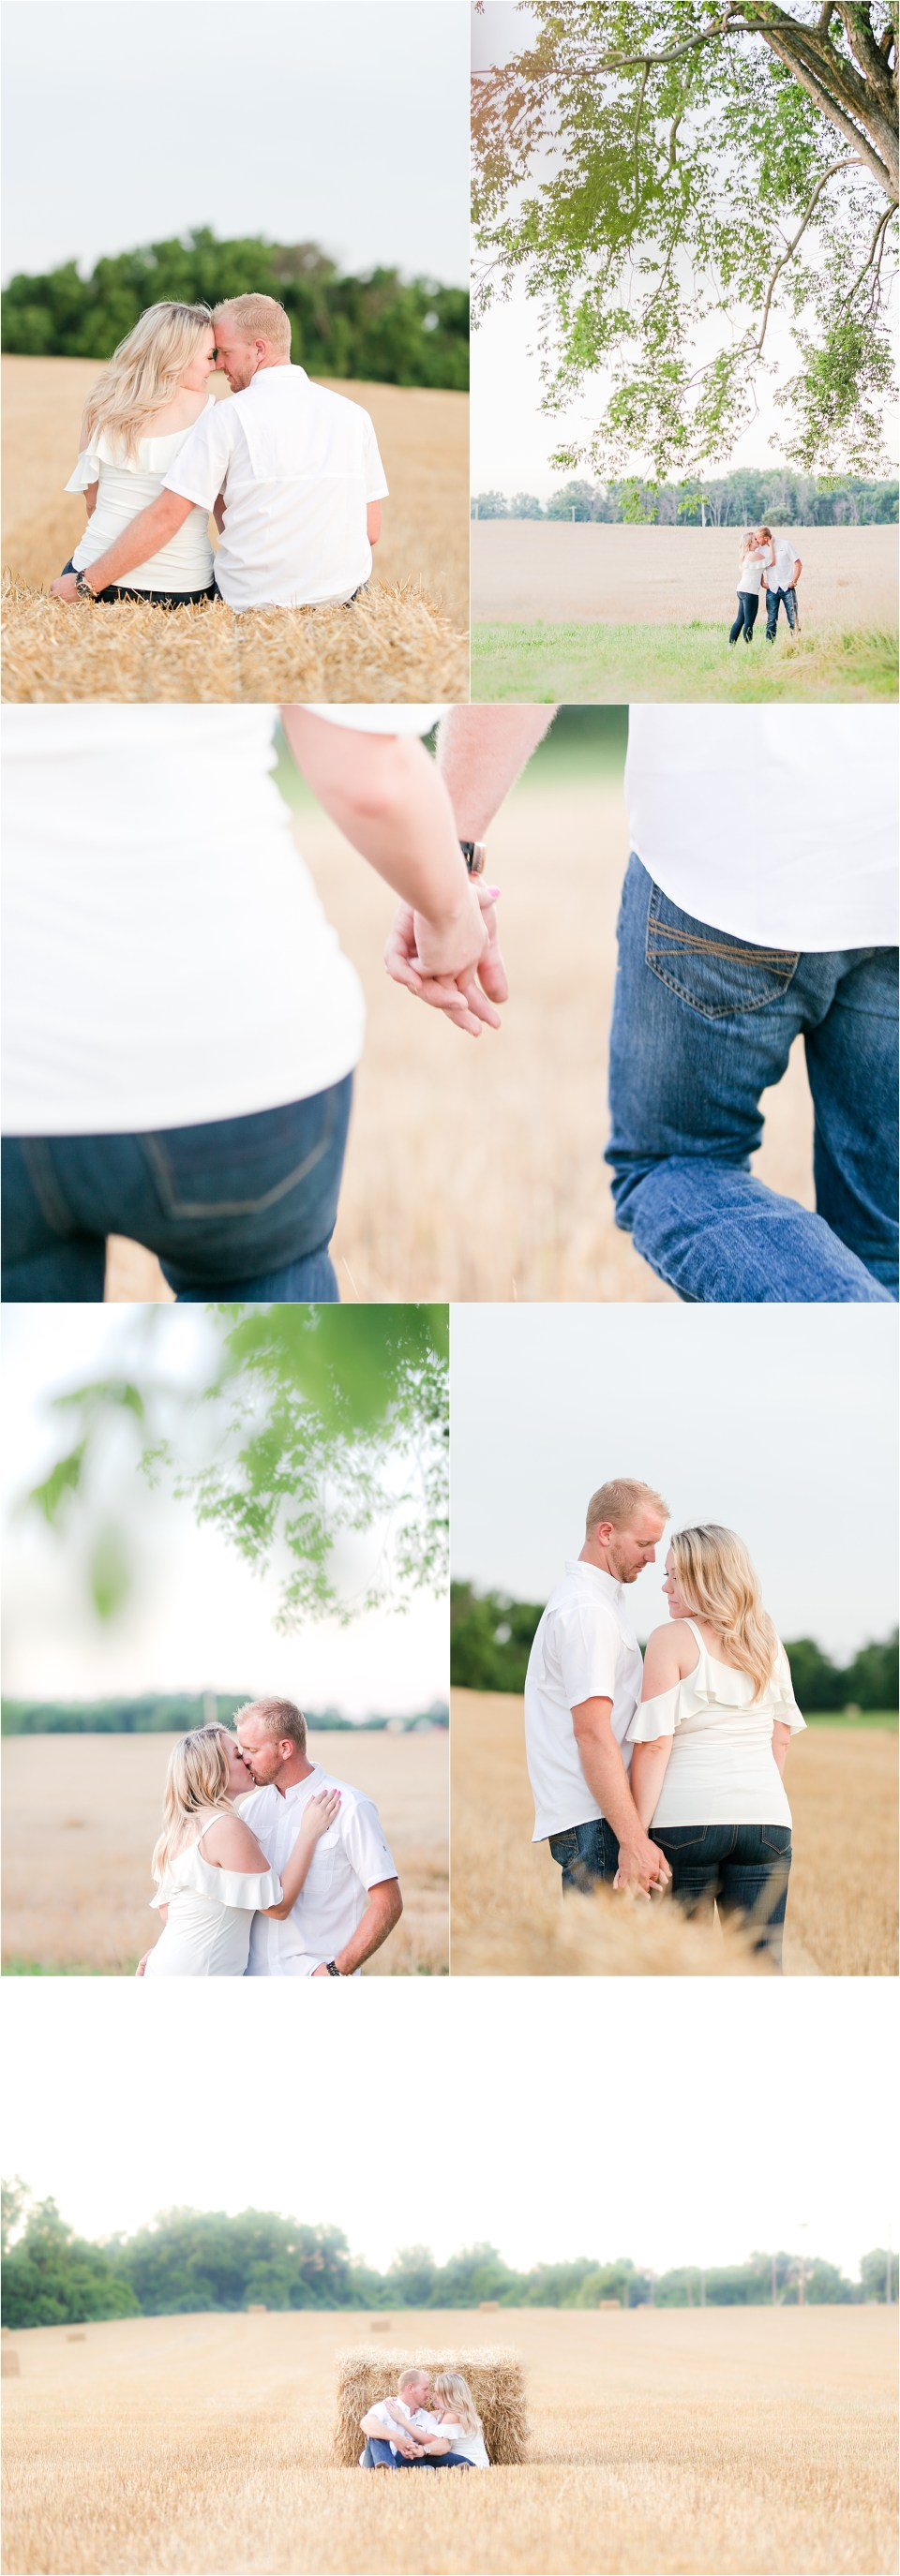 costola photography,destination wedding,engagement,engagement photography,maryland photographer,maryland wedding,wedding,wedding photography,